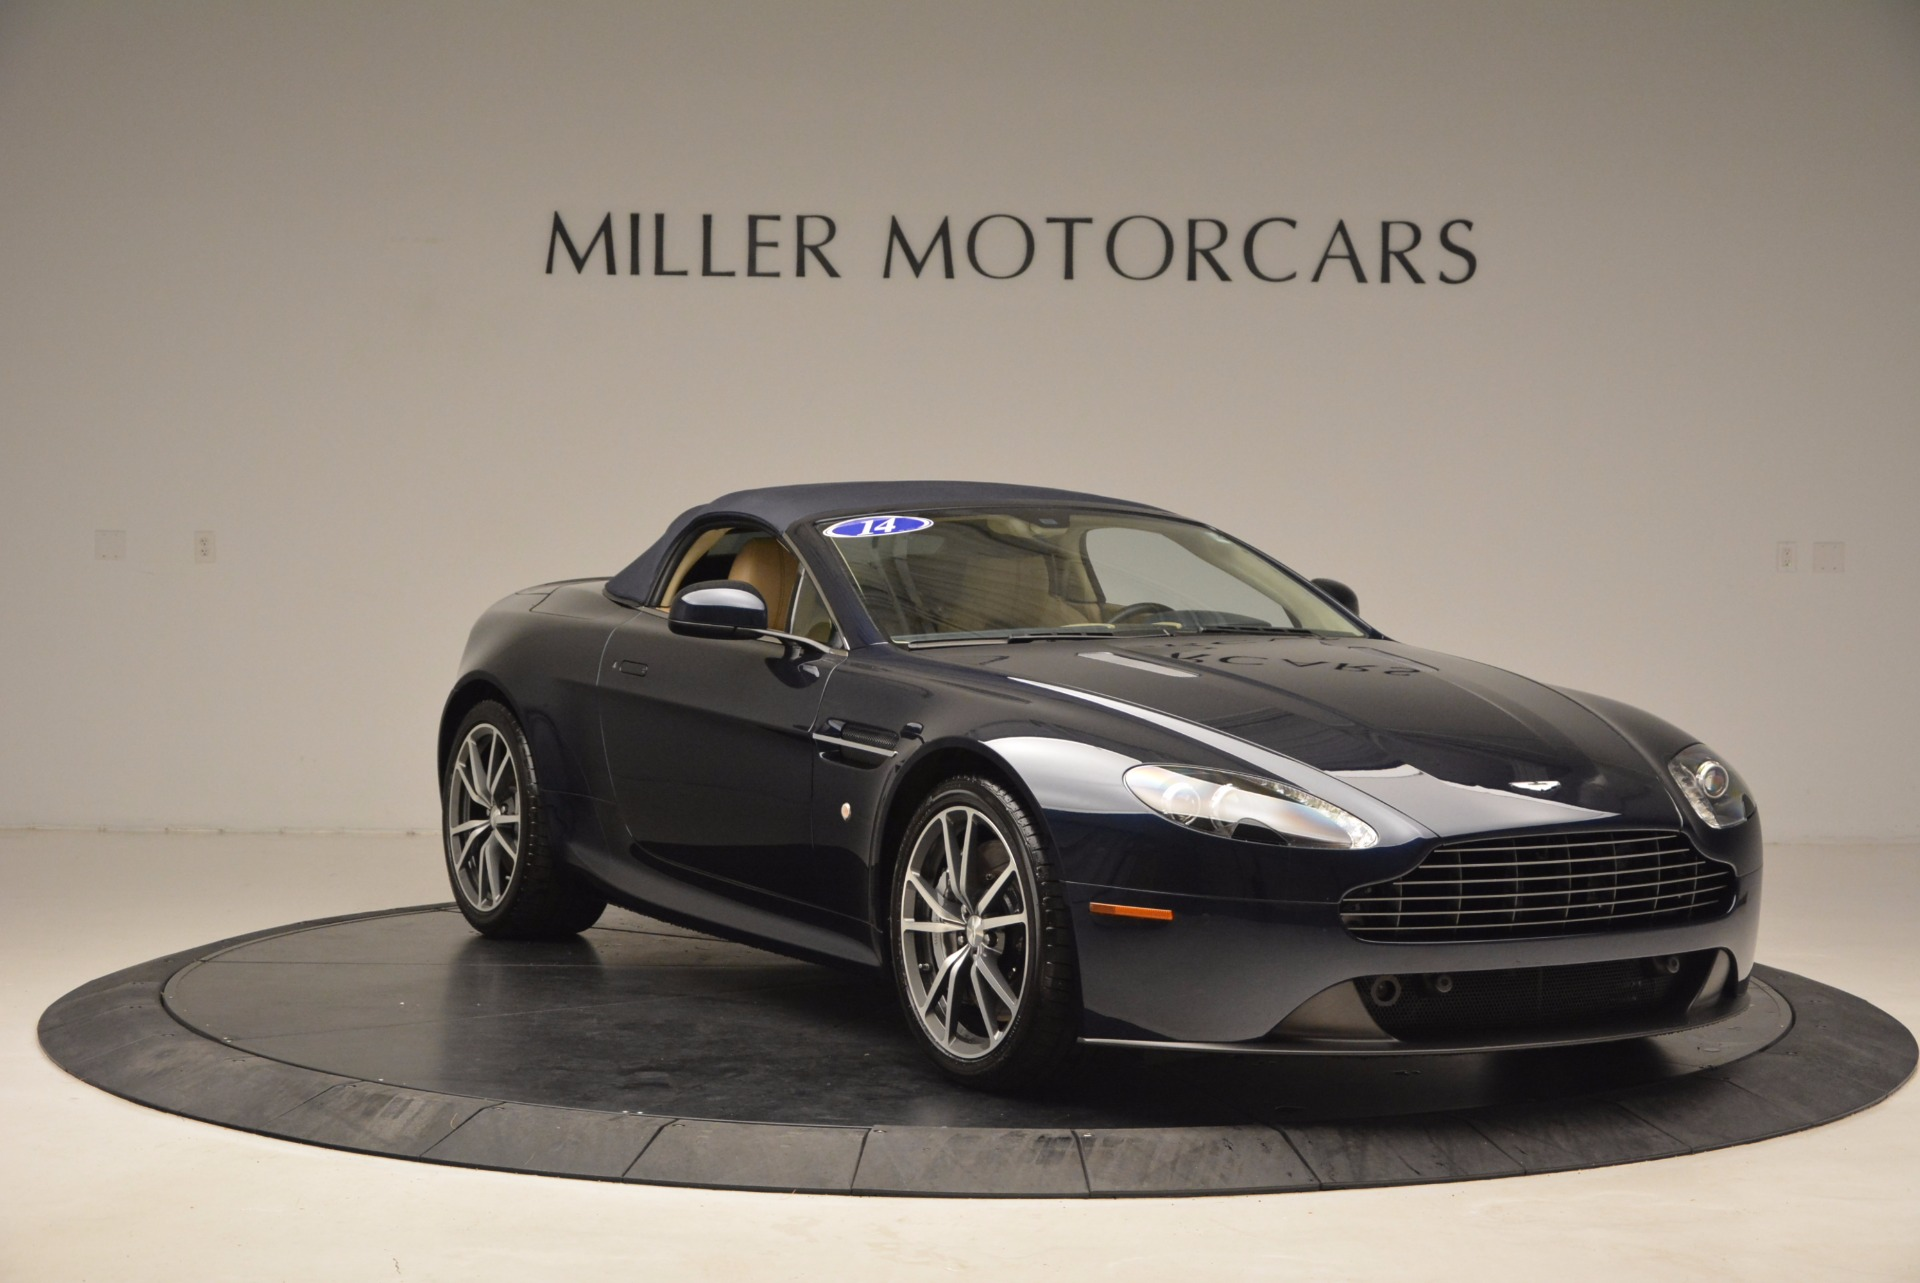 Used 2014 Aston Martin V8 Vantage Roadster For Sale In Greenwich, CT. Alfa Romeo of Greenwich, 7282 1623_p18